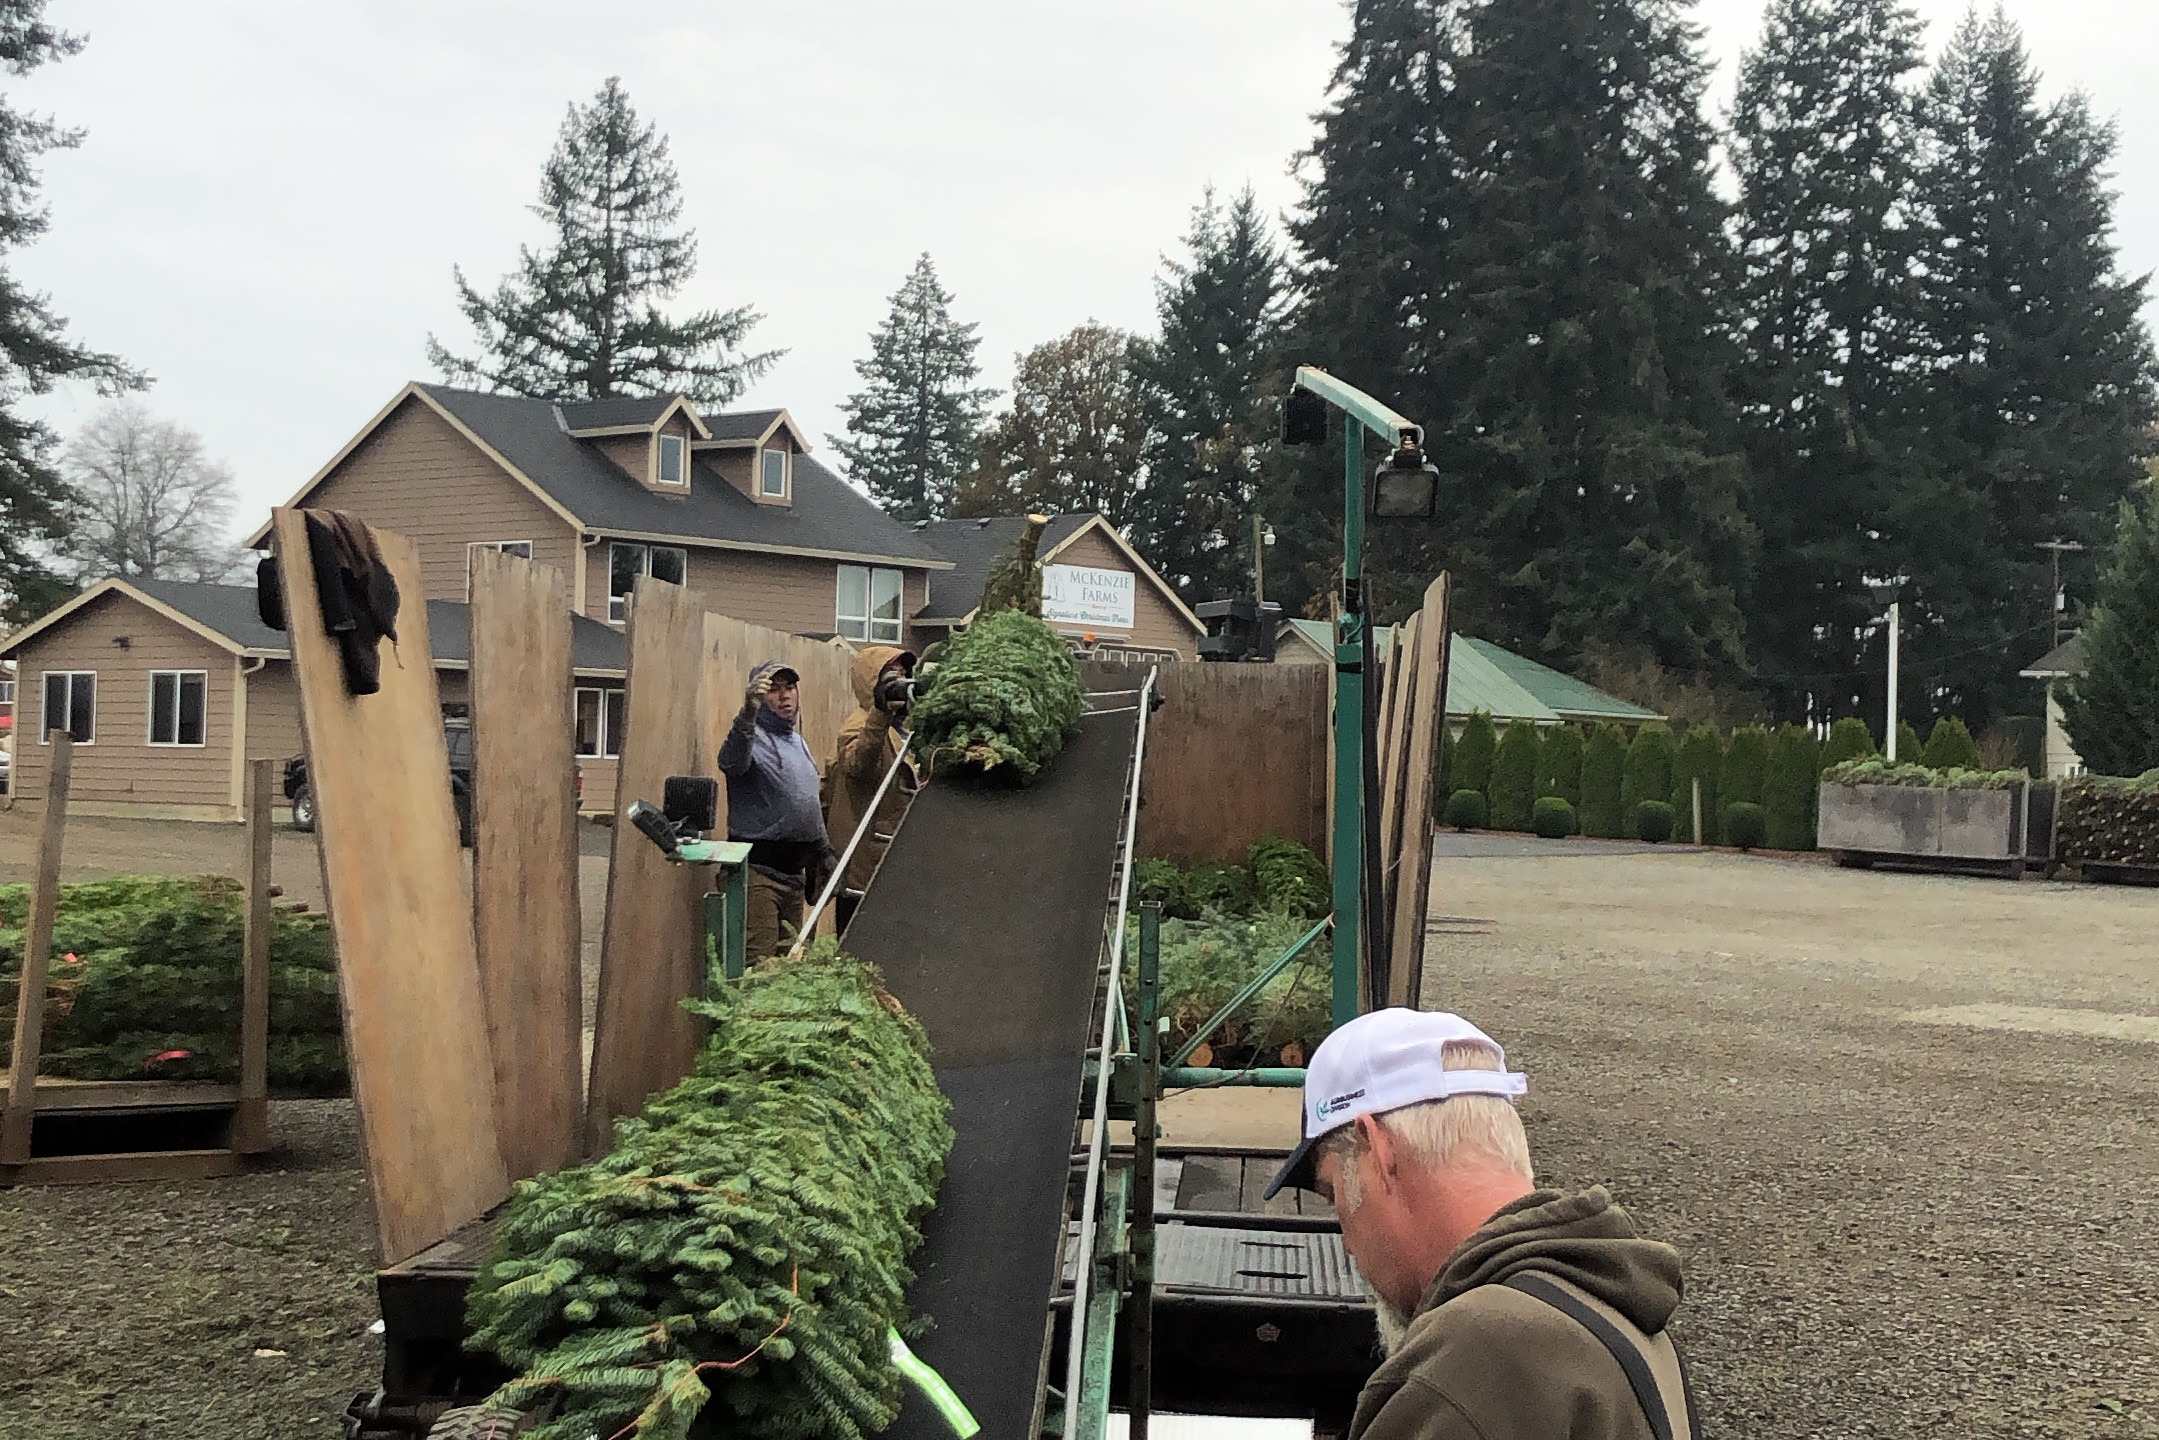 Loading smaller Christmas trees into trailer with conveyor belt